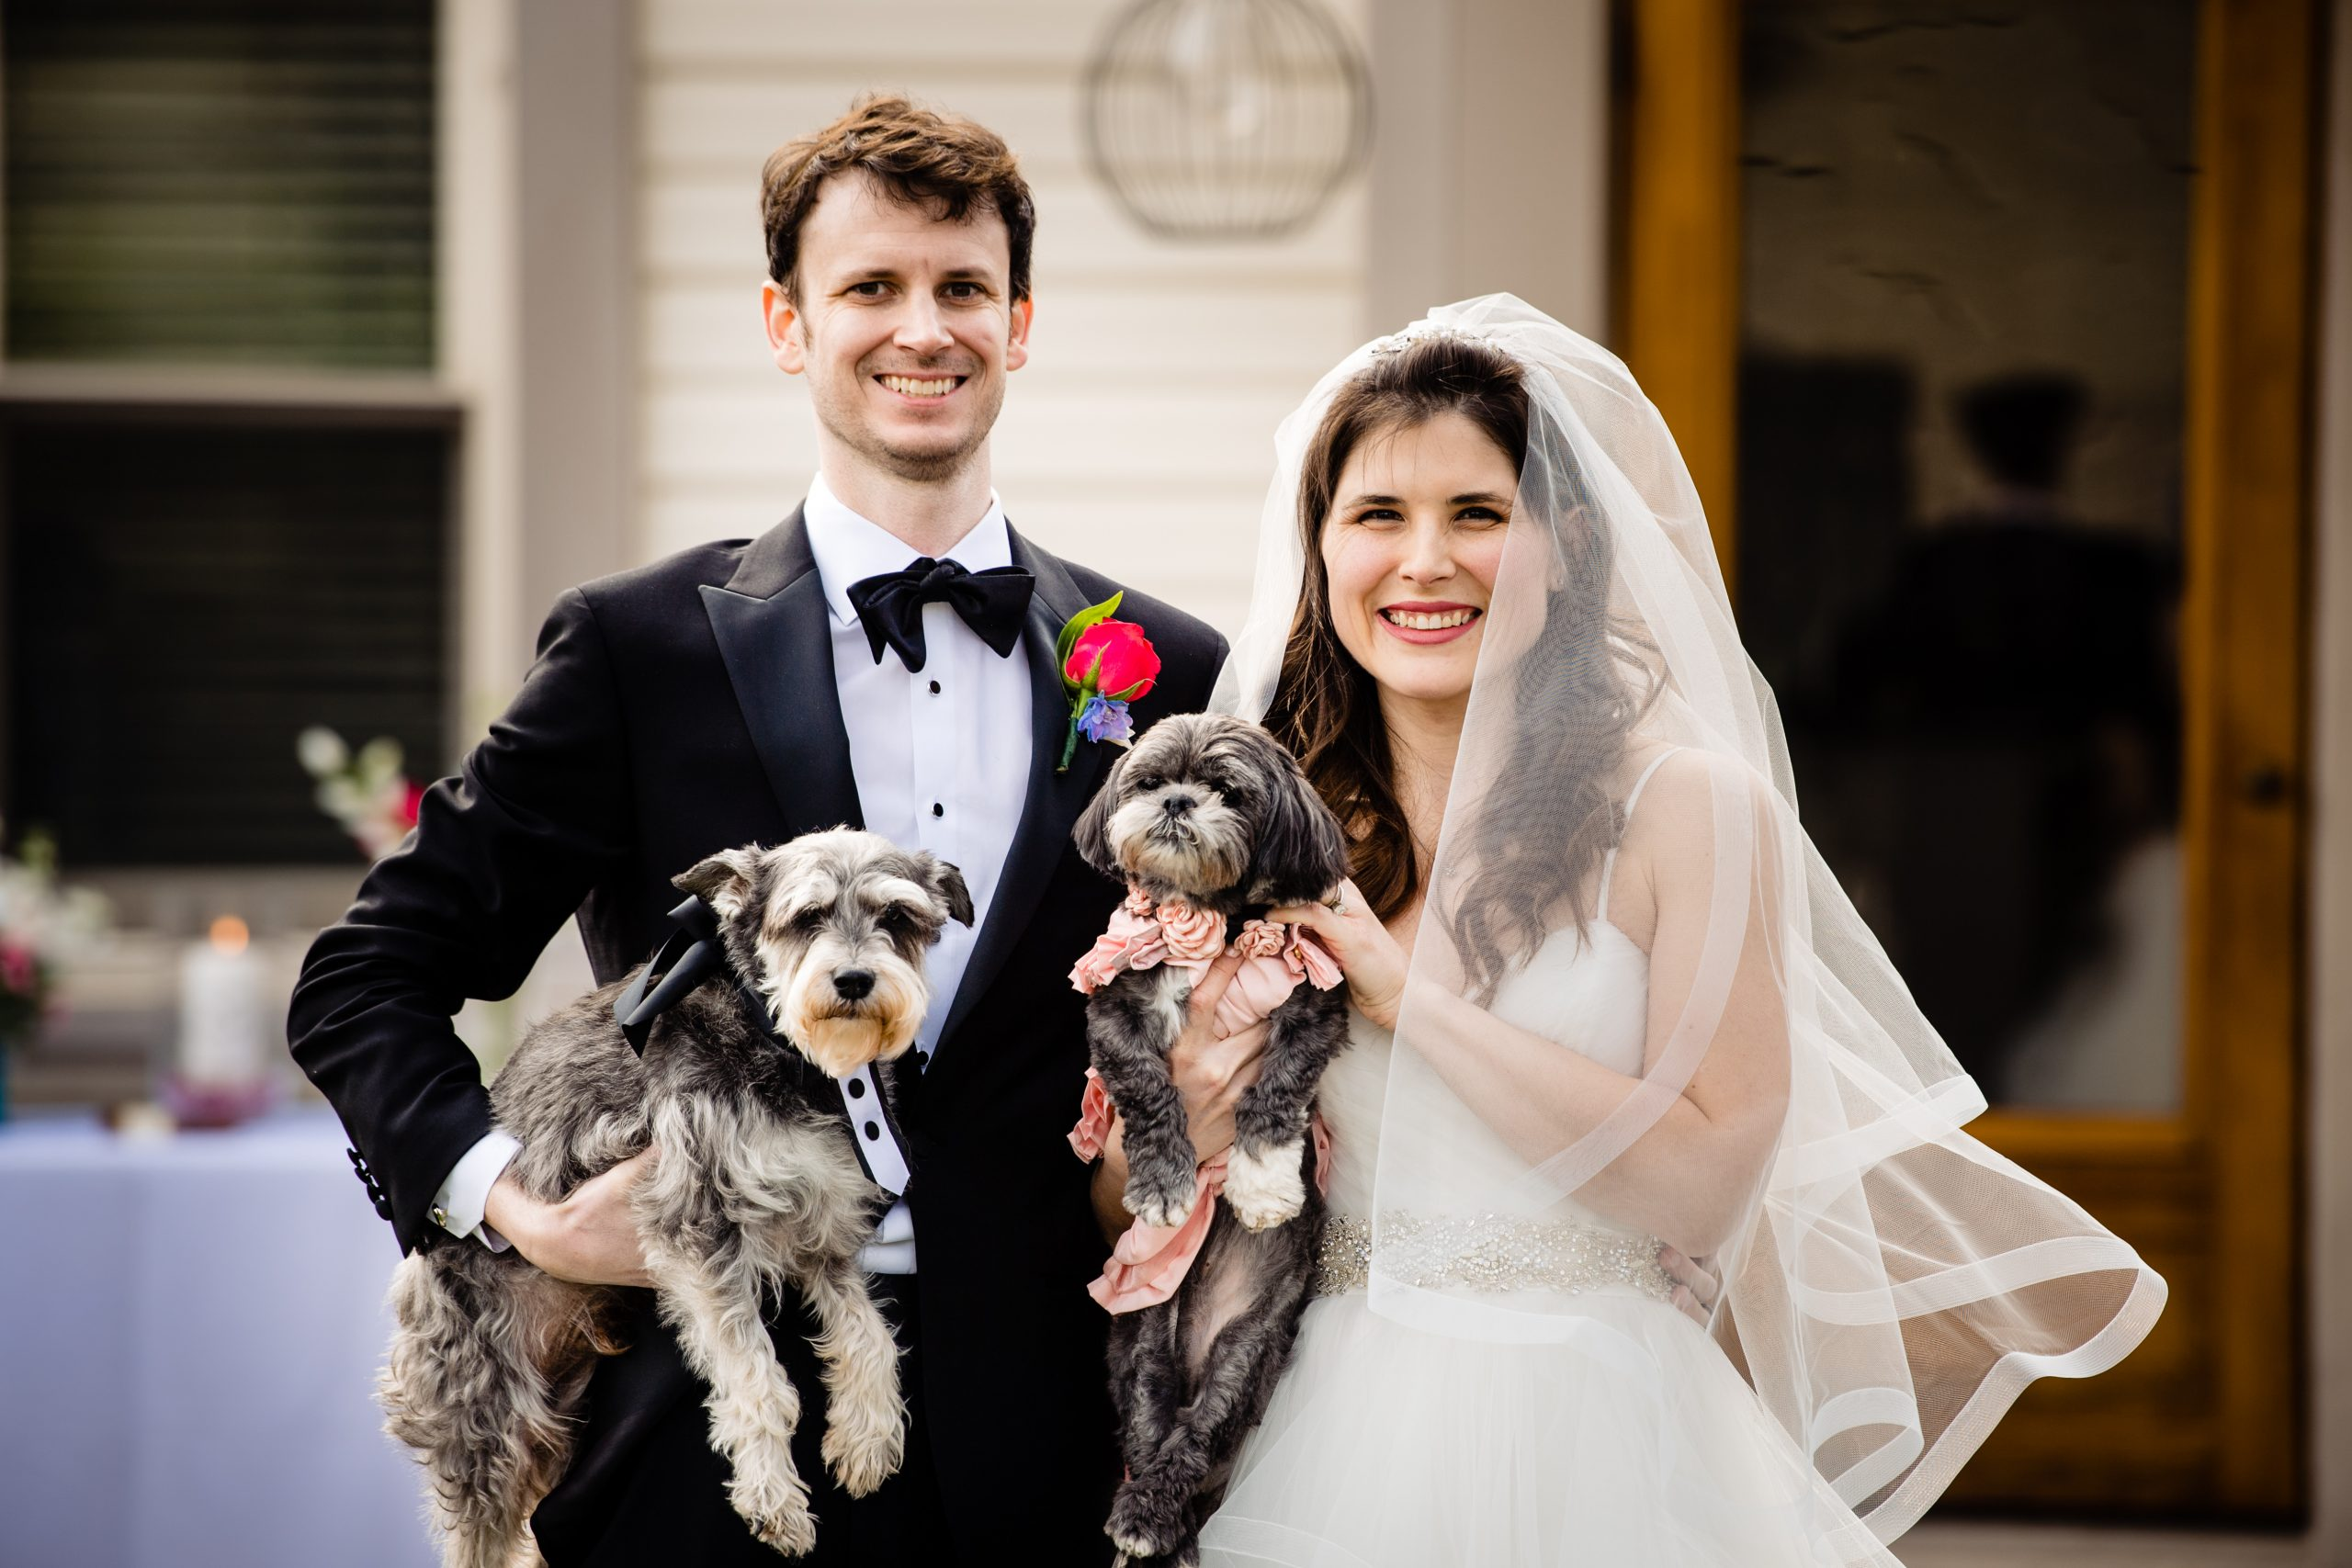 A first family portrait of a bride and groom and their two dogs.